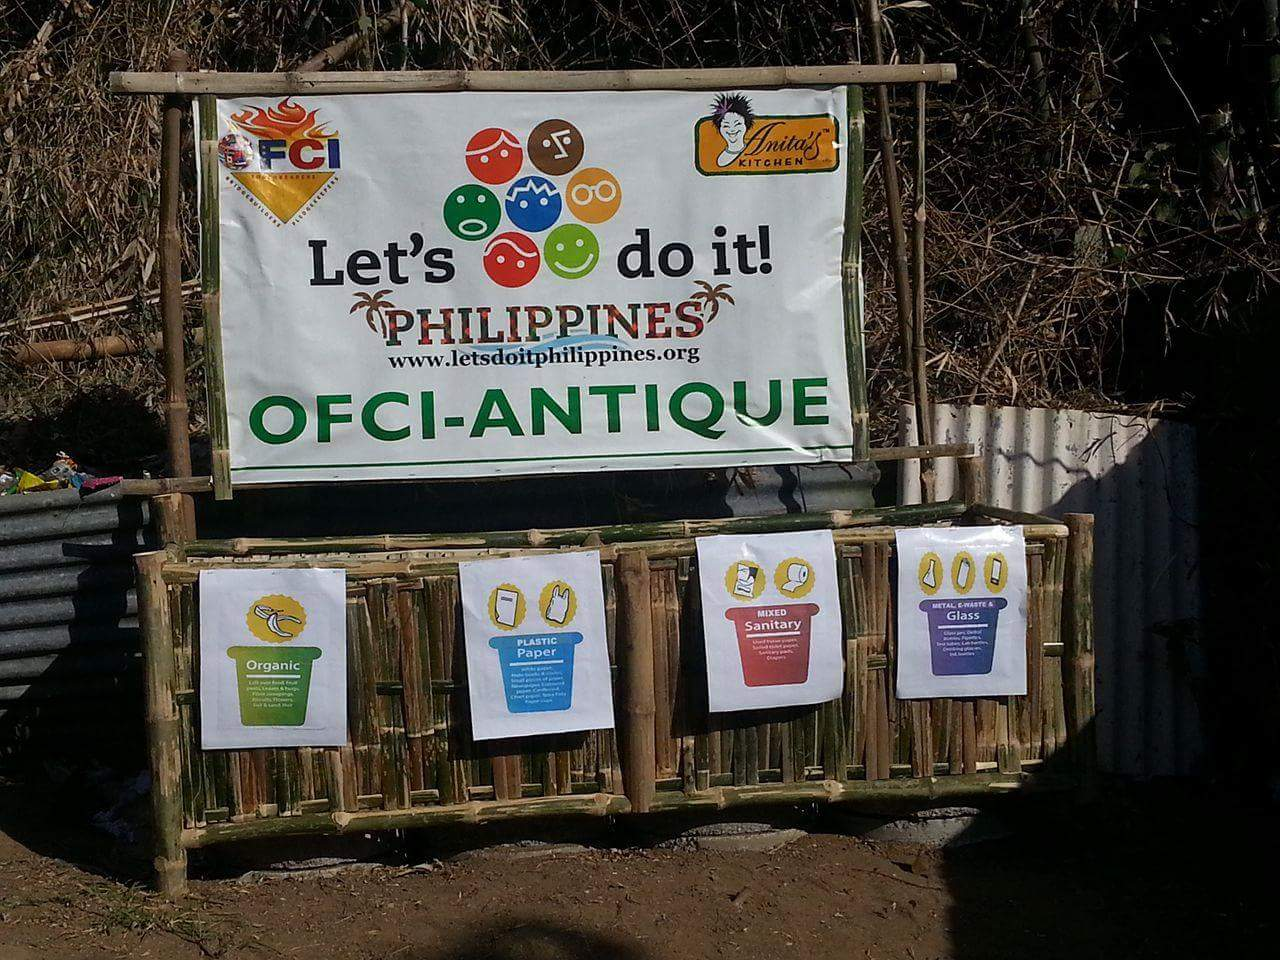 This same waste receptacles will soon be made available at the Barangay Plaza of Mapatag, to be handled by the youth volunteers.